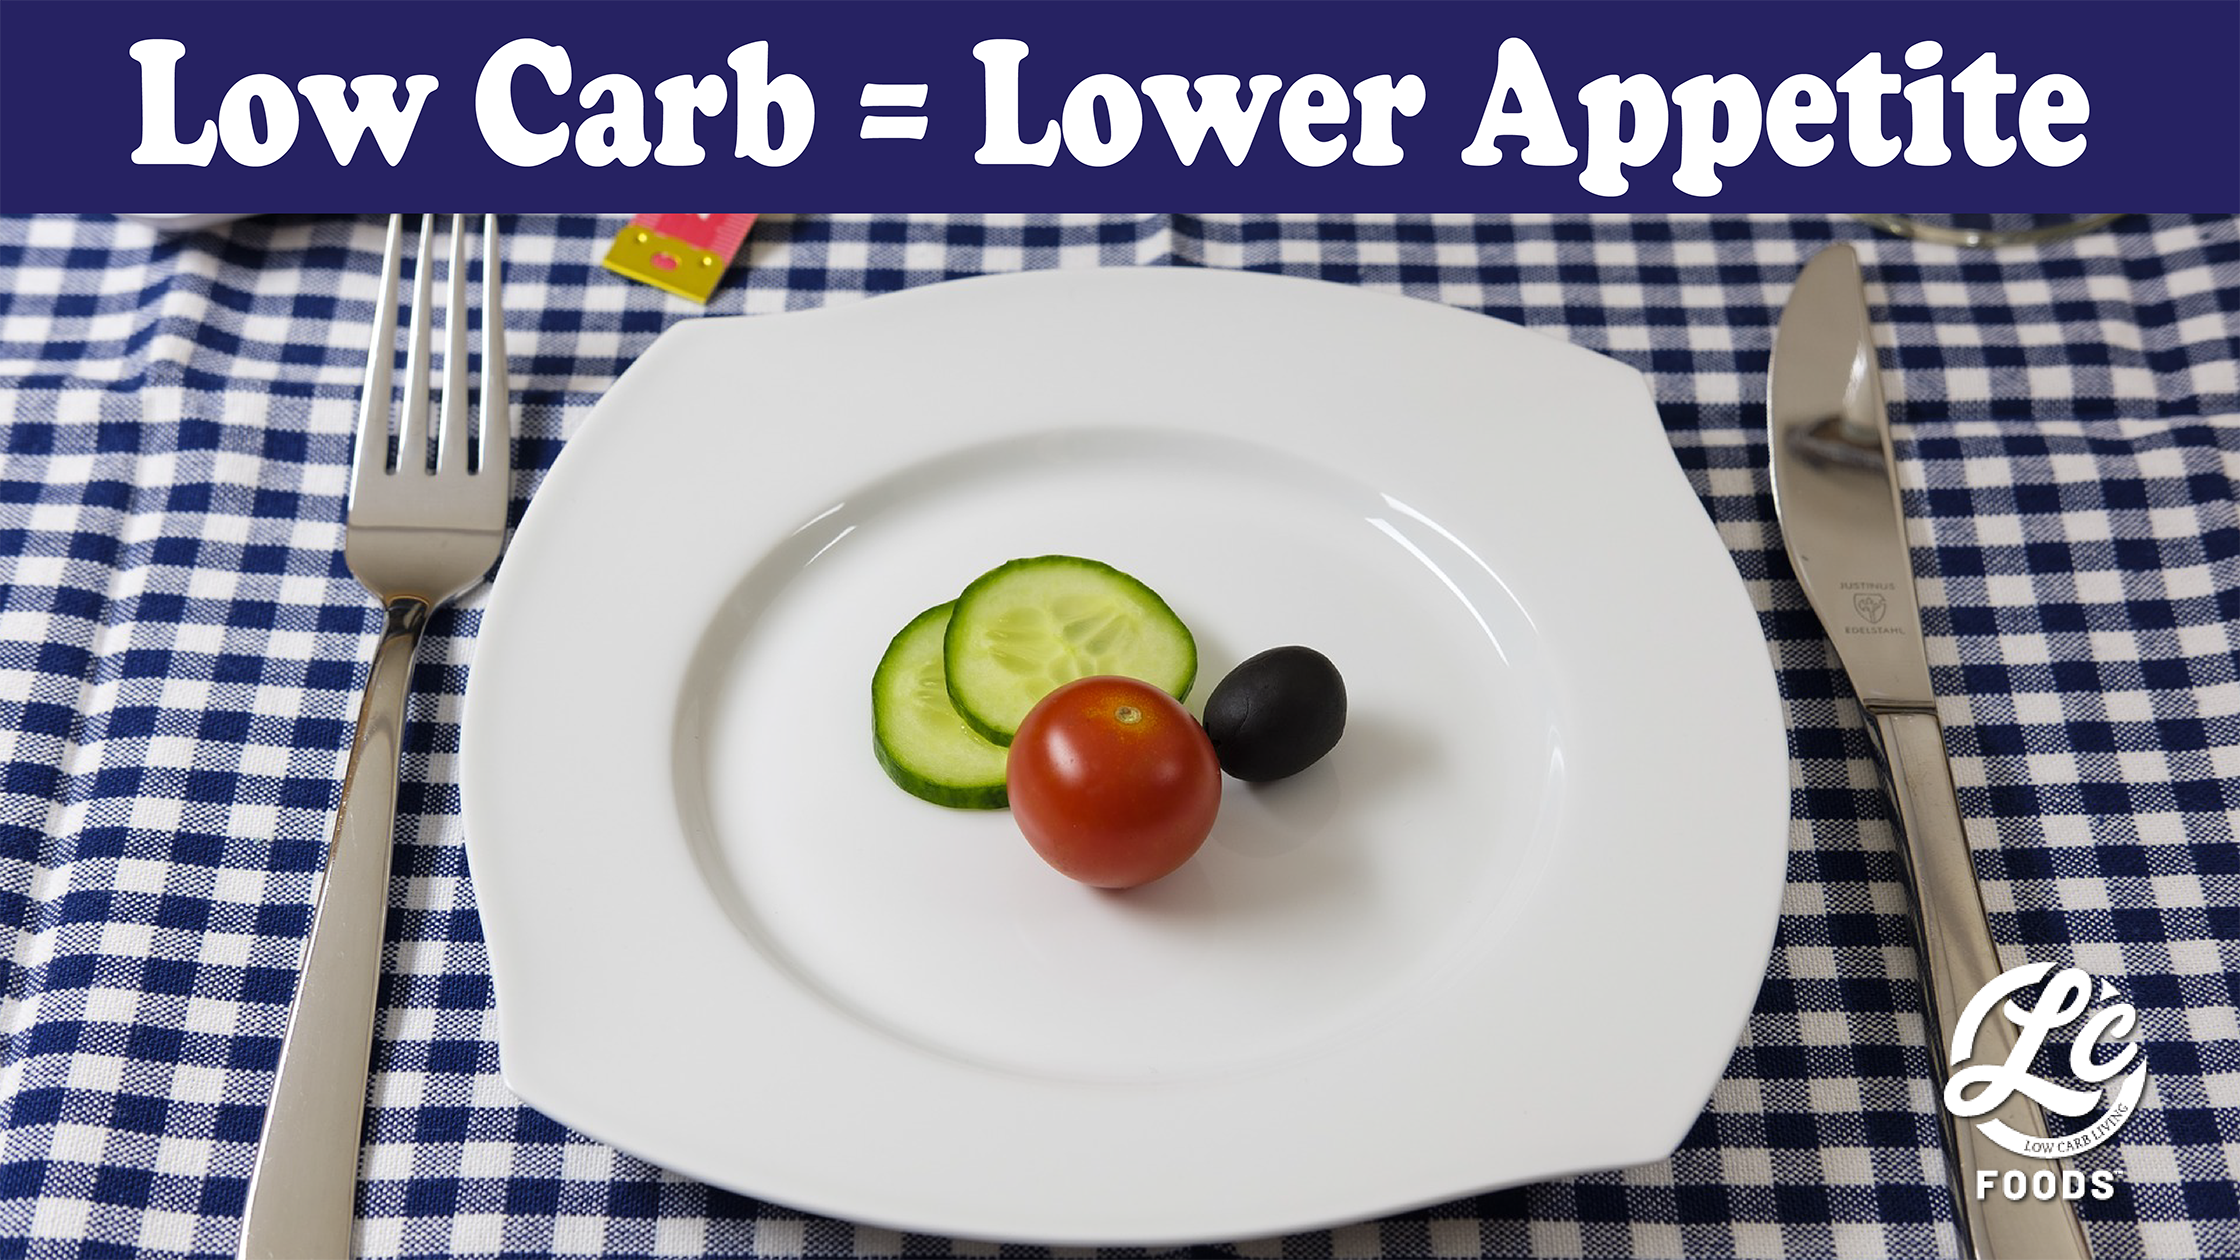 Thumbnail for Low Carb Diets Significantly Lower Your Appetite